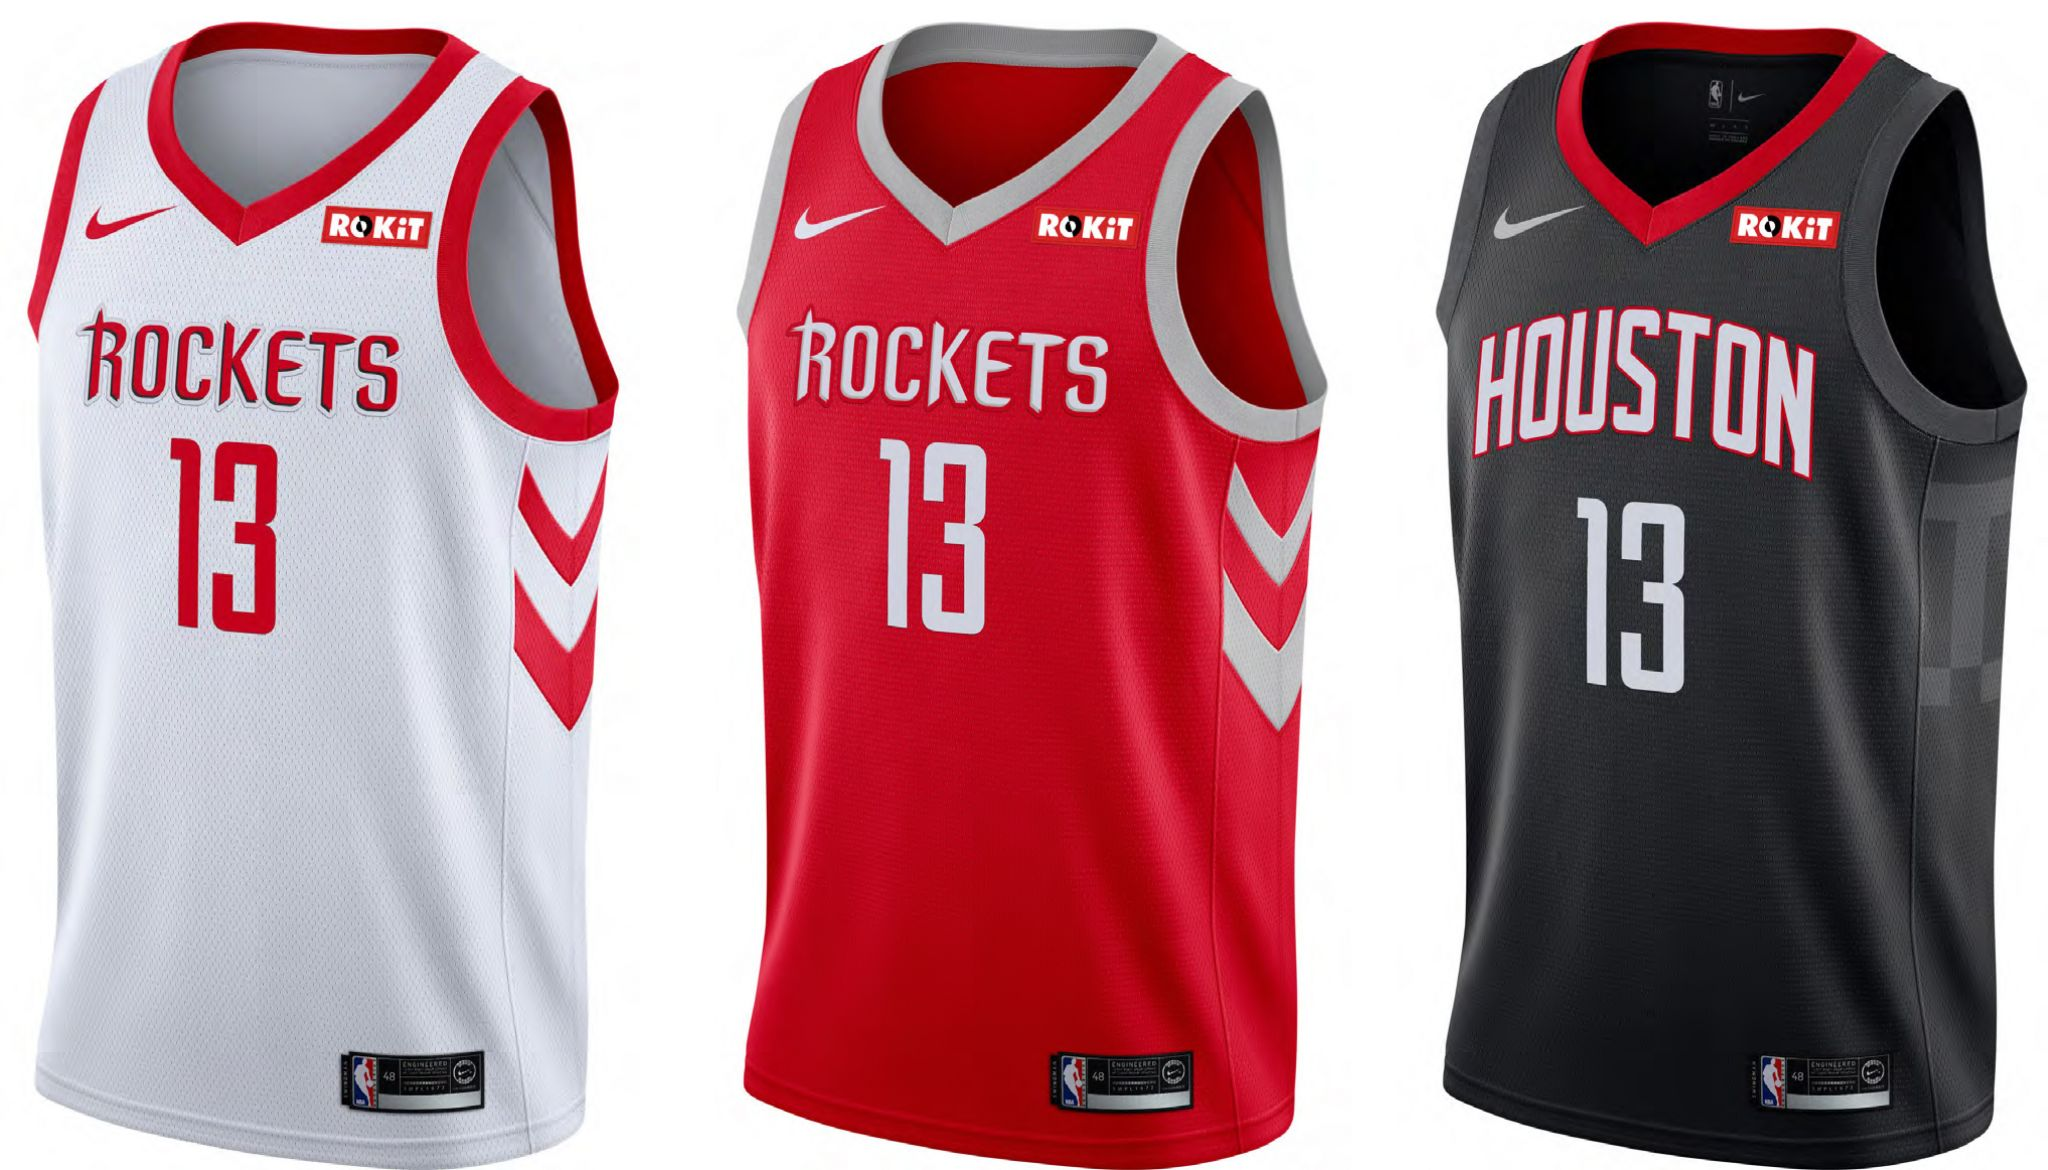 49619d799d9f Rockets announce jersey partnership deal with ROKiT Phones - Houston  Chronicle